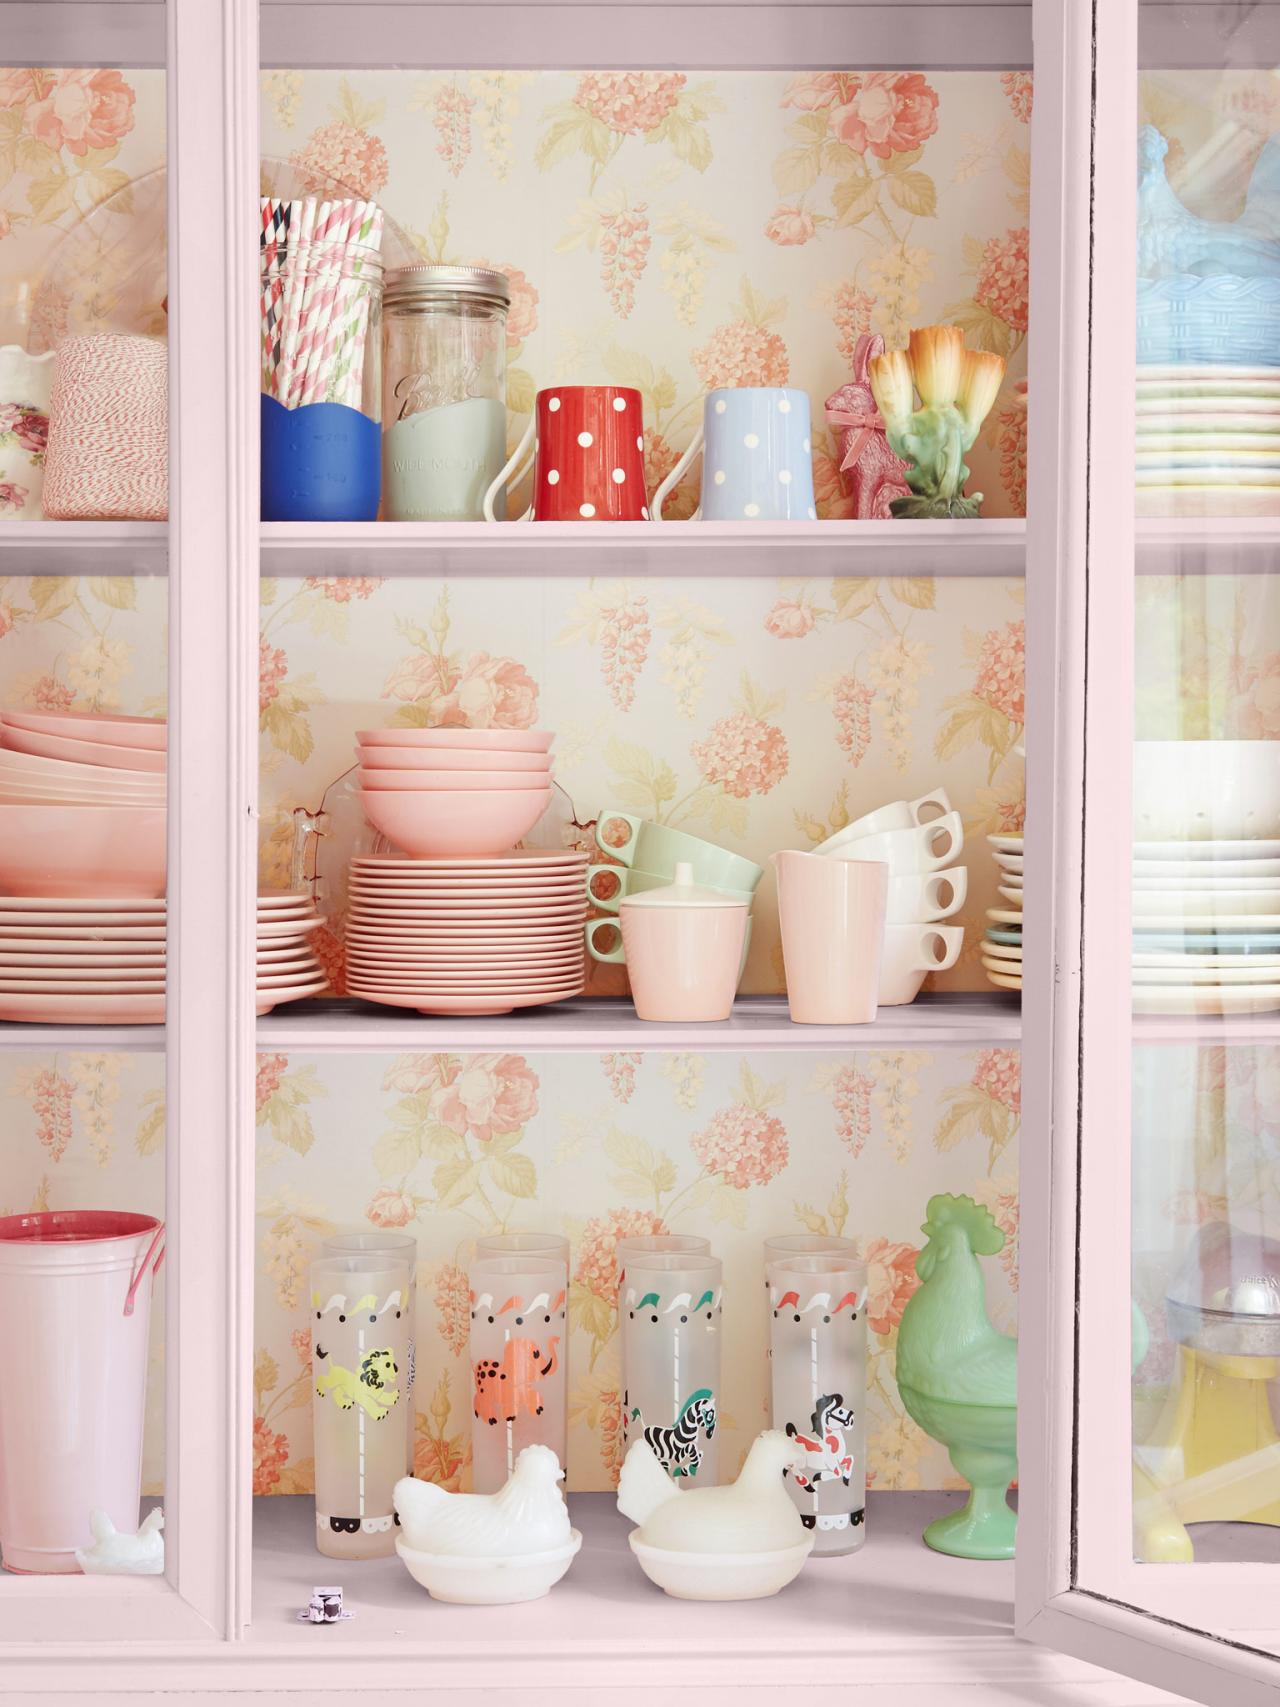 HGTV - wallpaper hutch